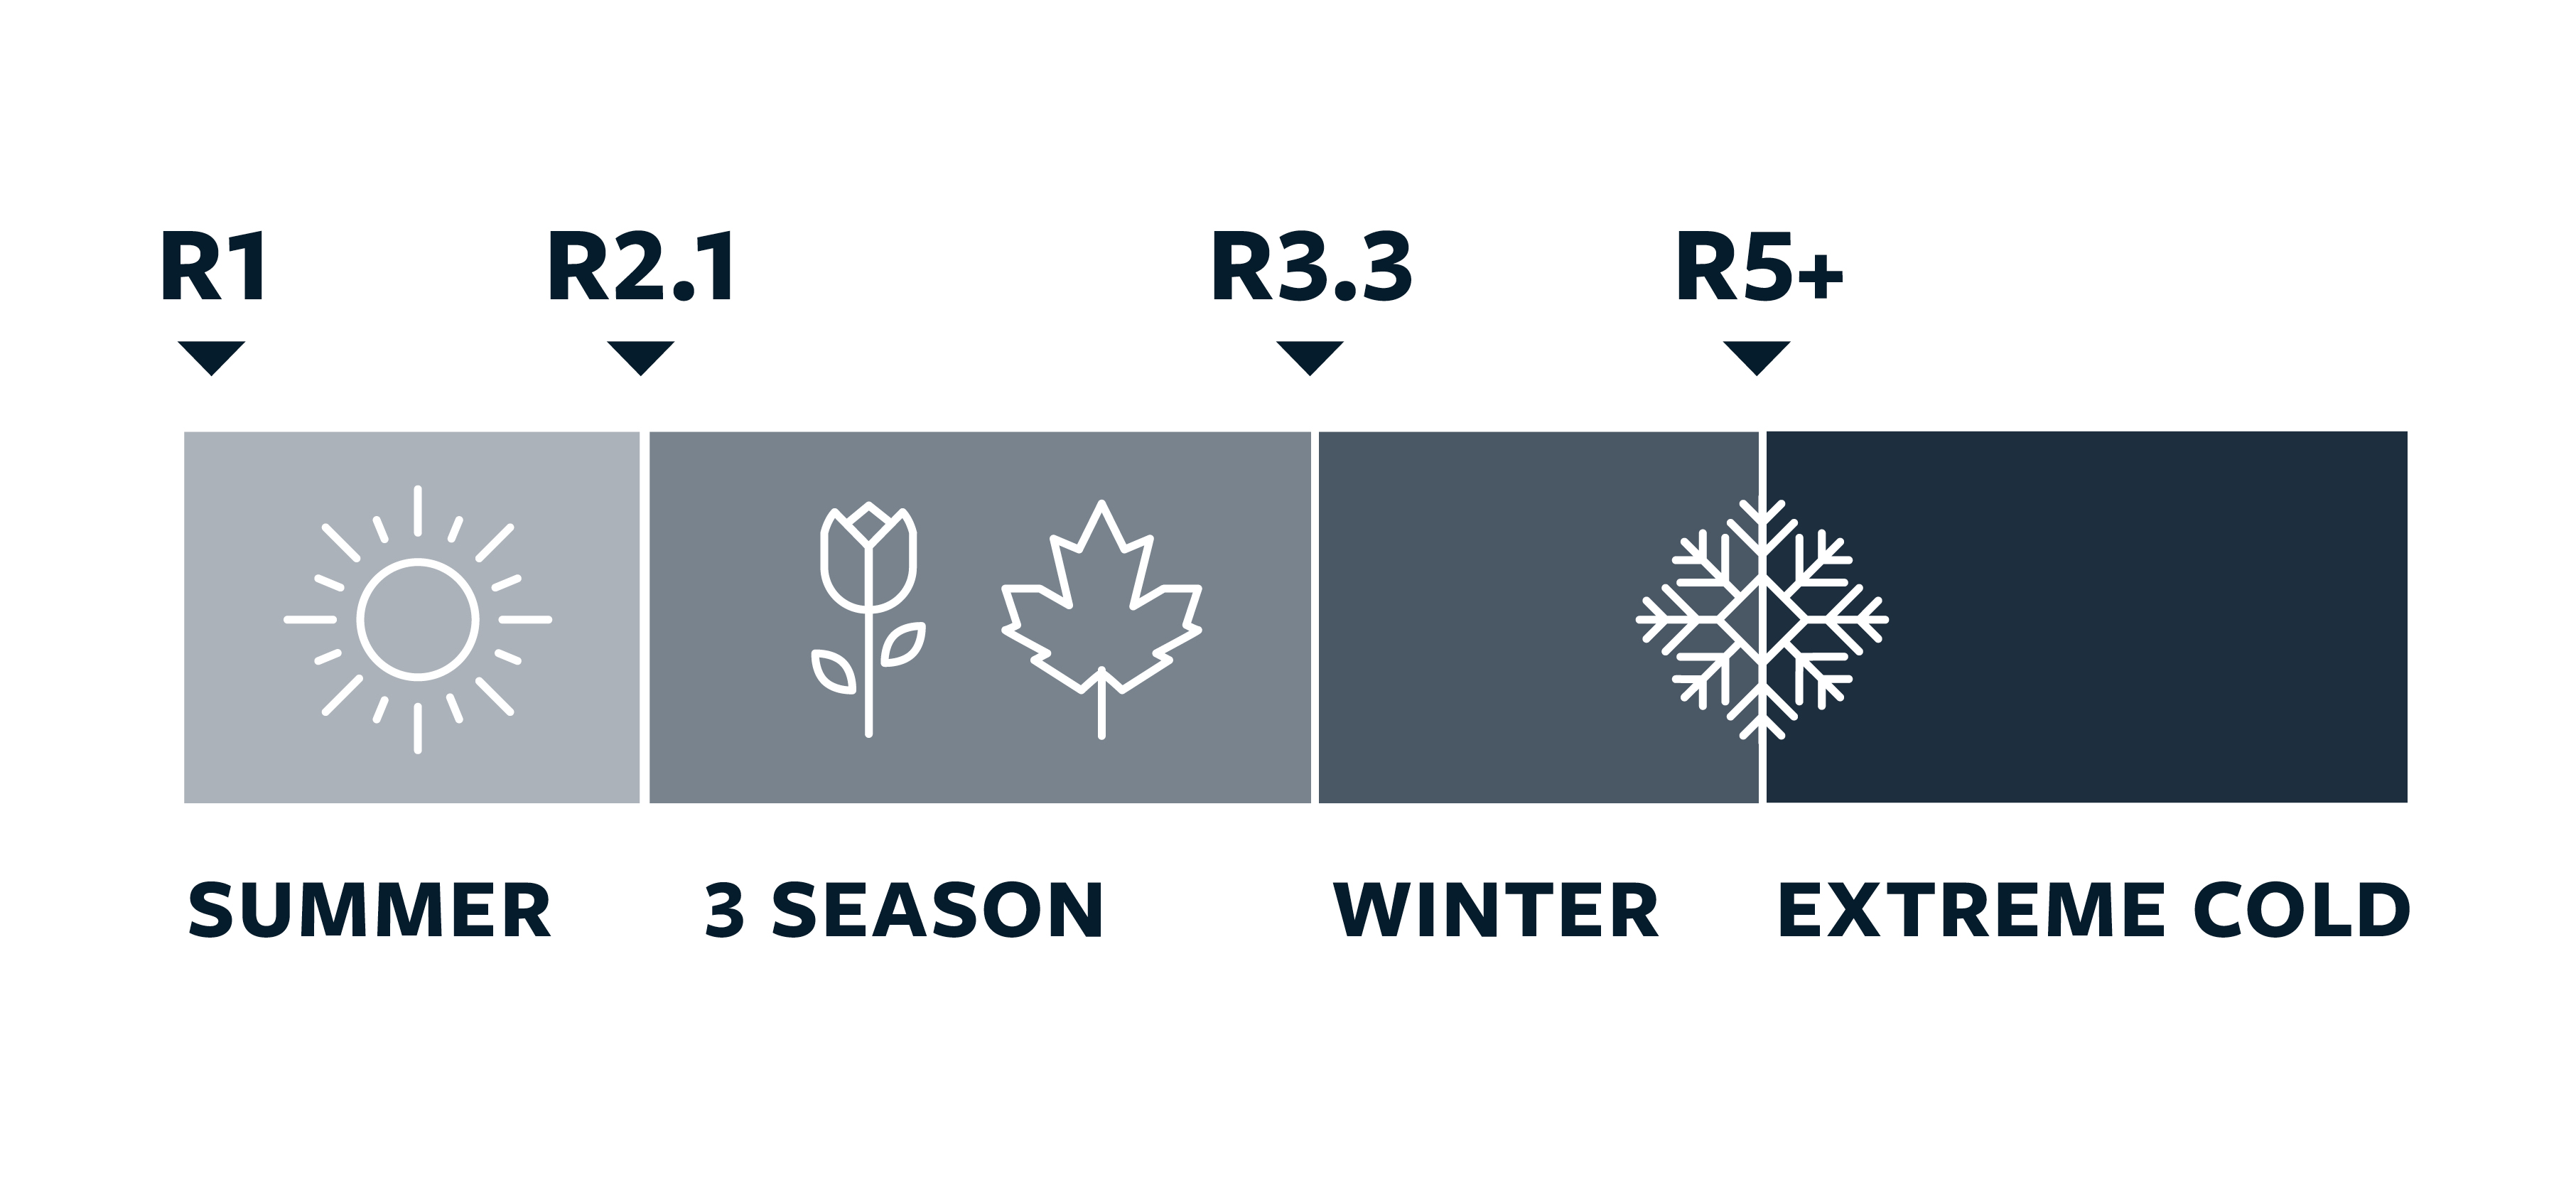 R-Value by Season of Use